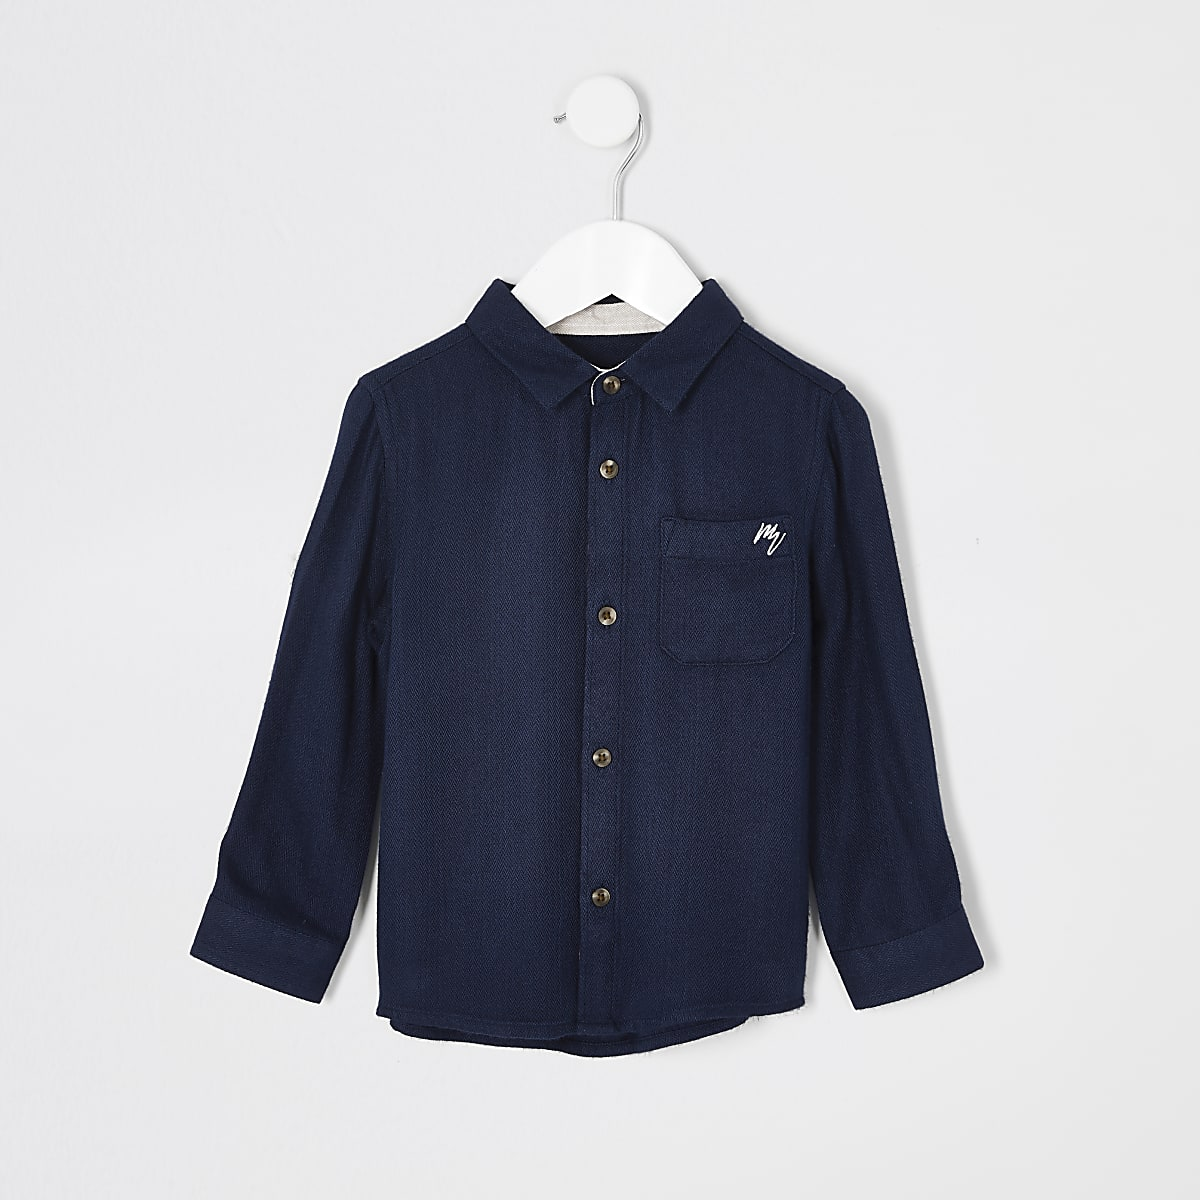 Mini boys navy textured chest pocket shirt